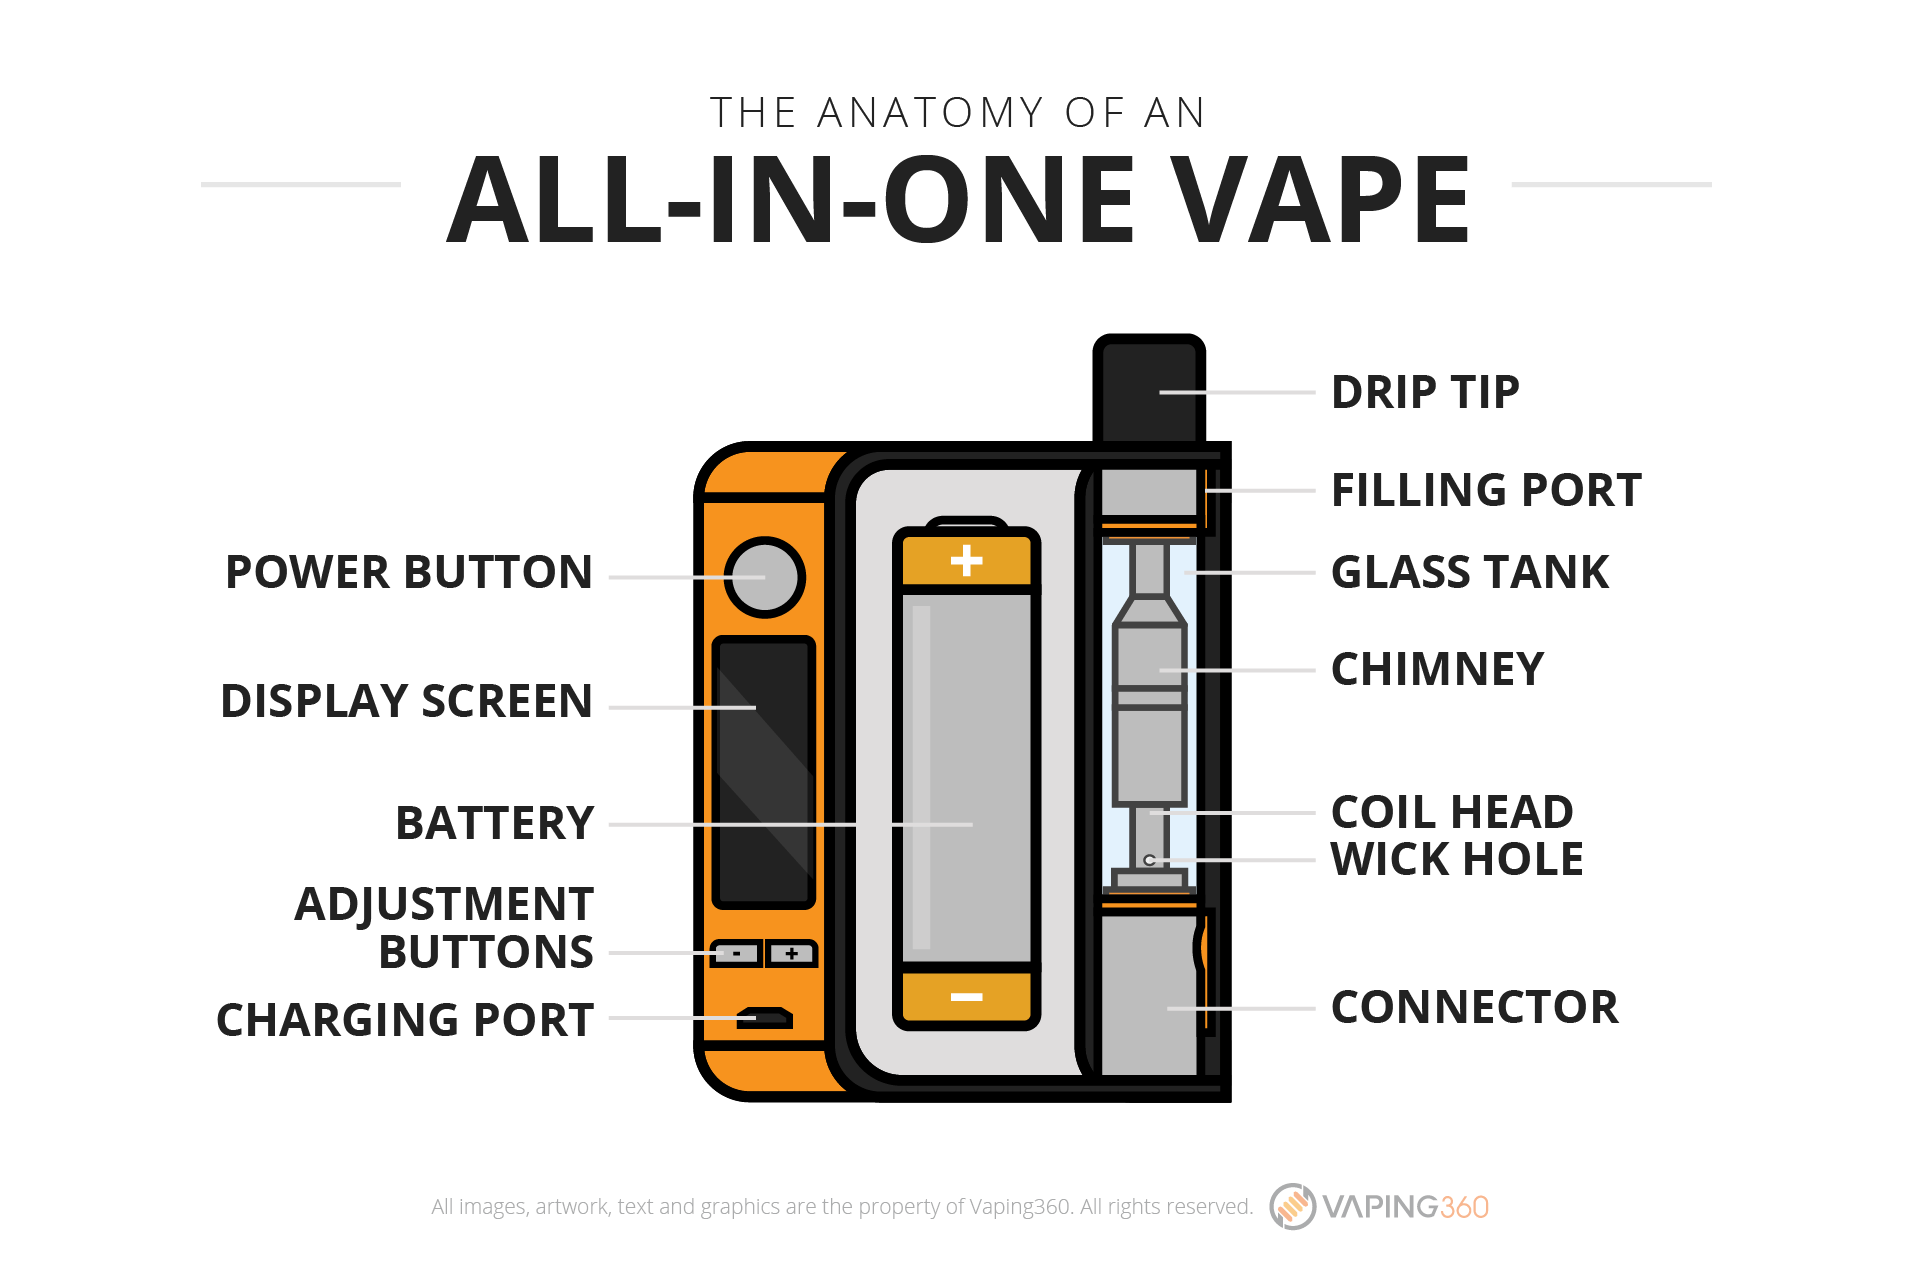 the-anatomy-of-an-all-in-one-vape